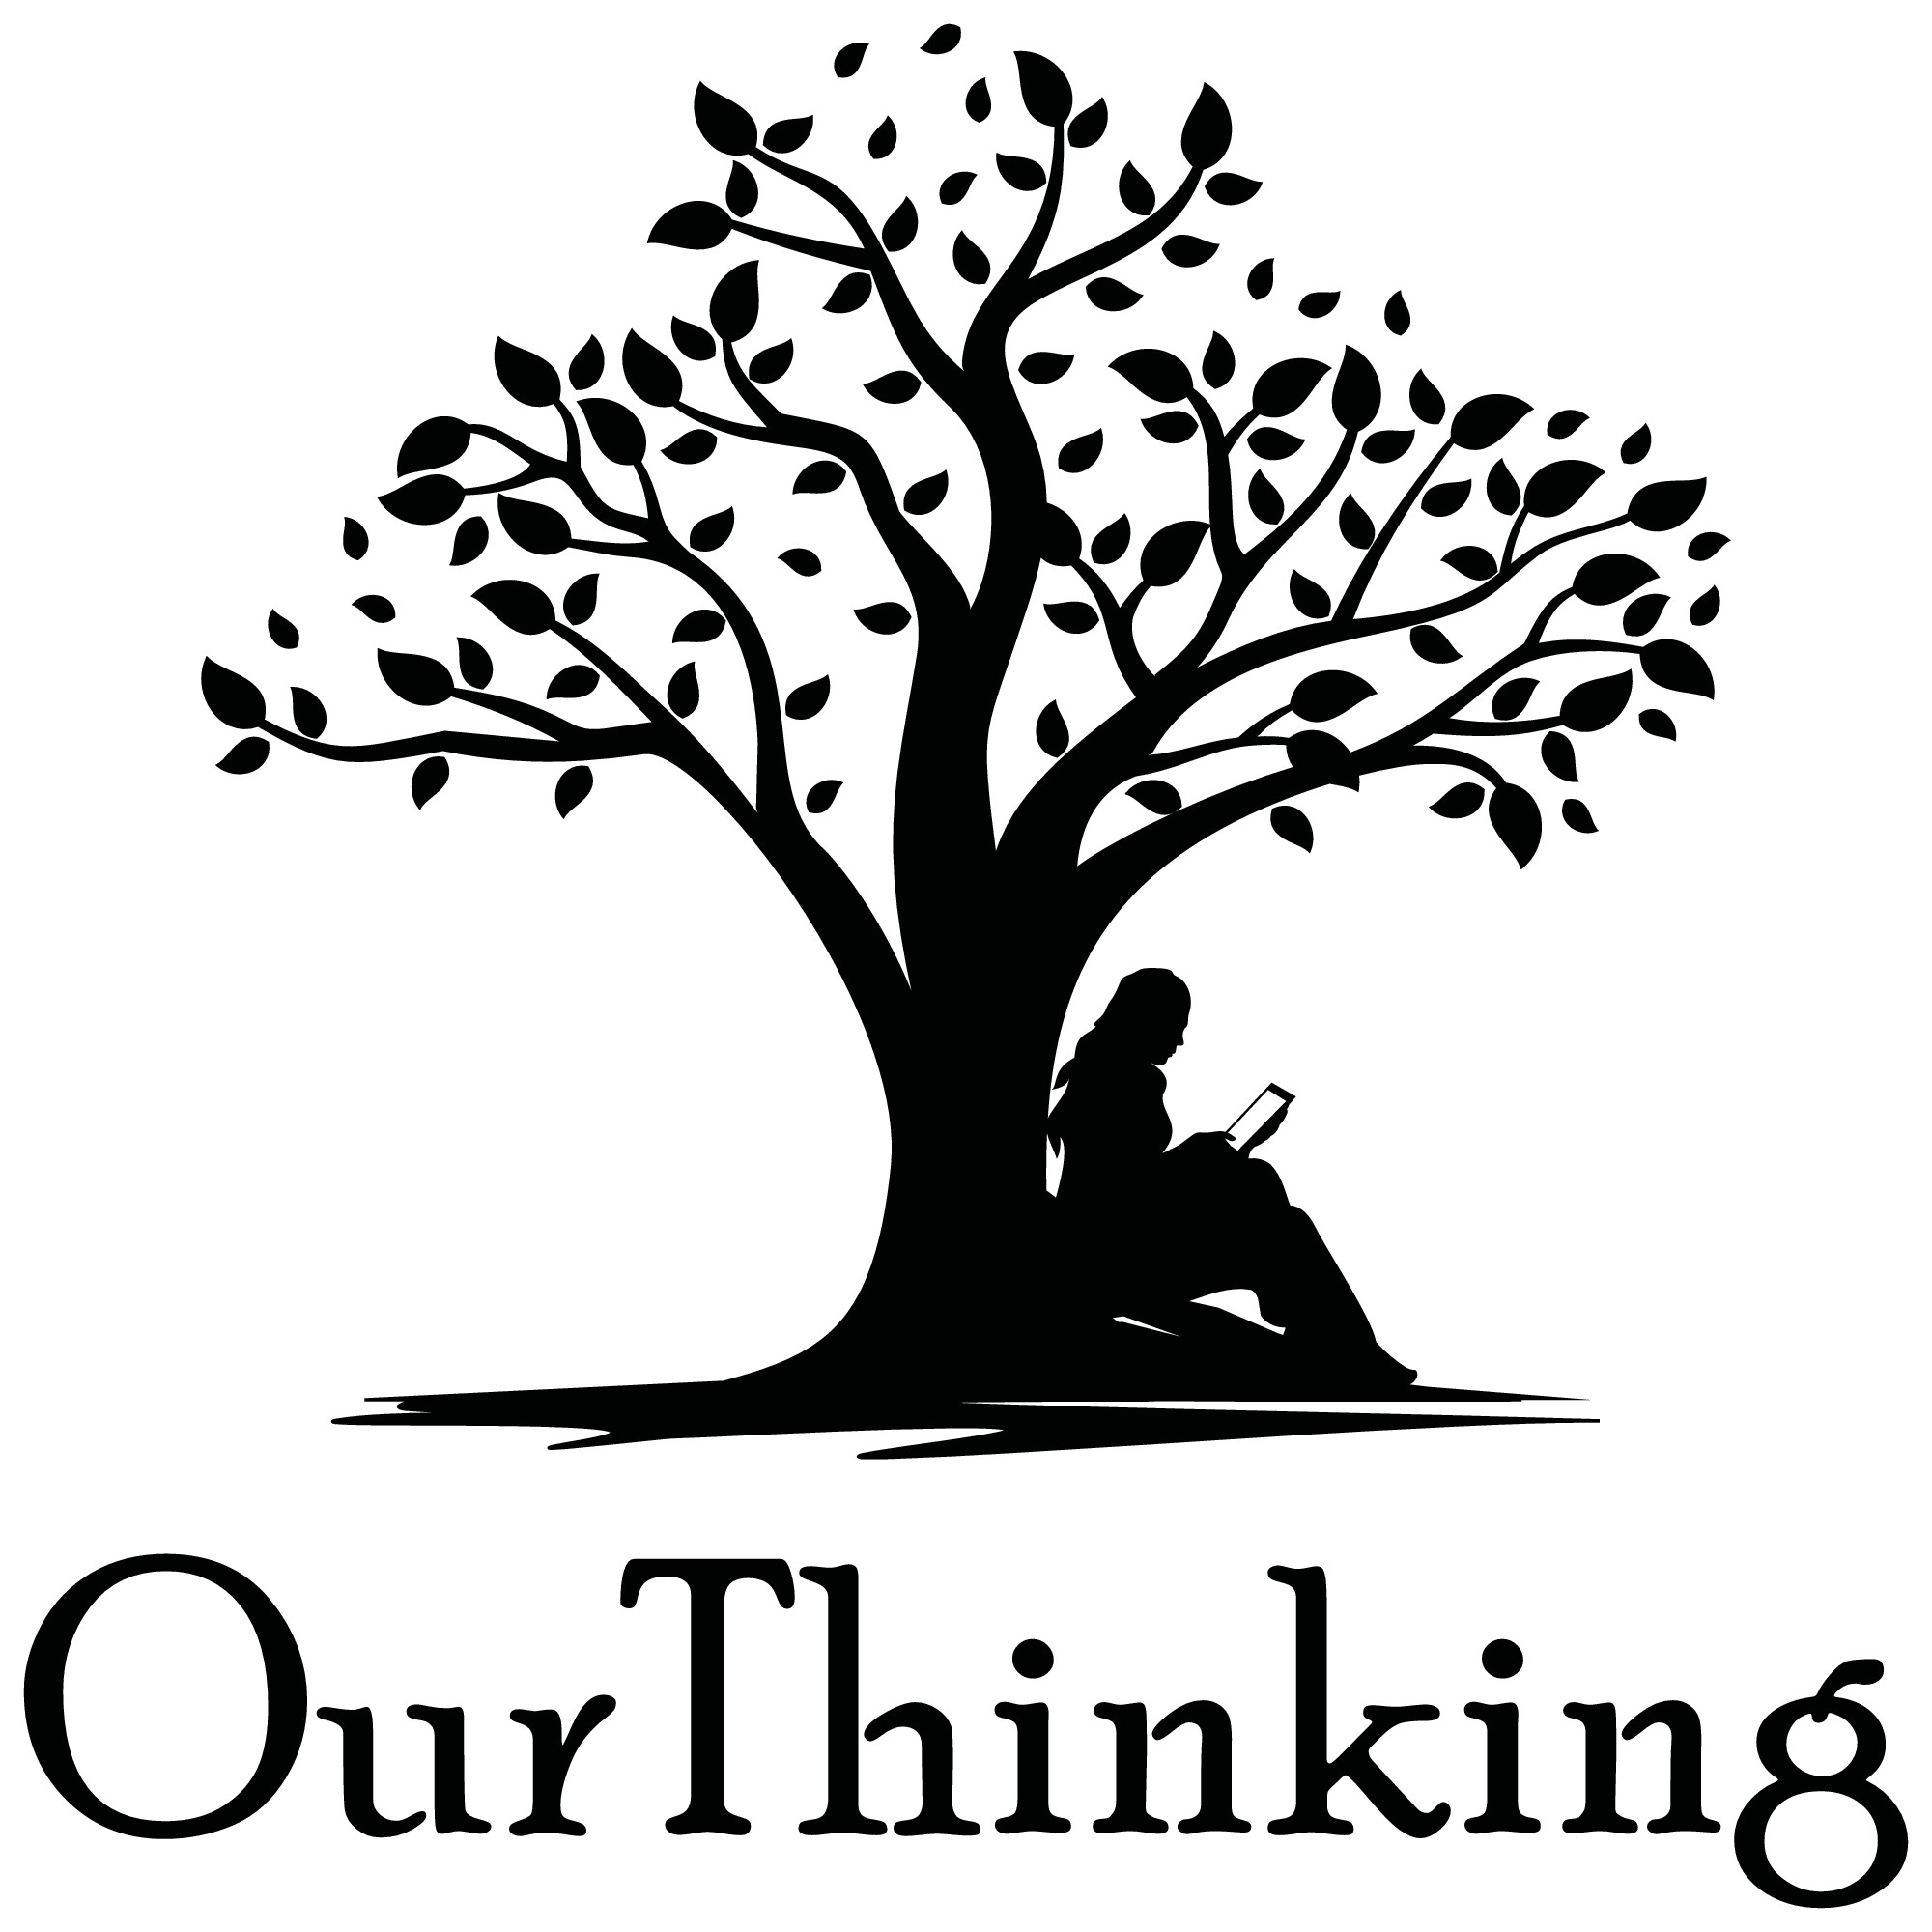 OurThinking - This logo will be seen by millions monthly